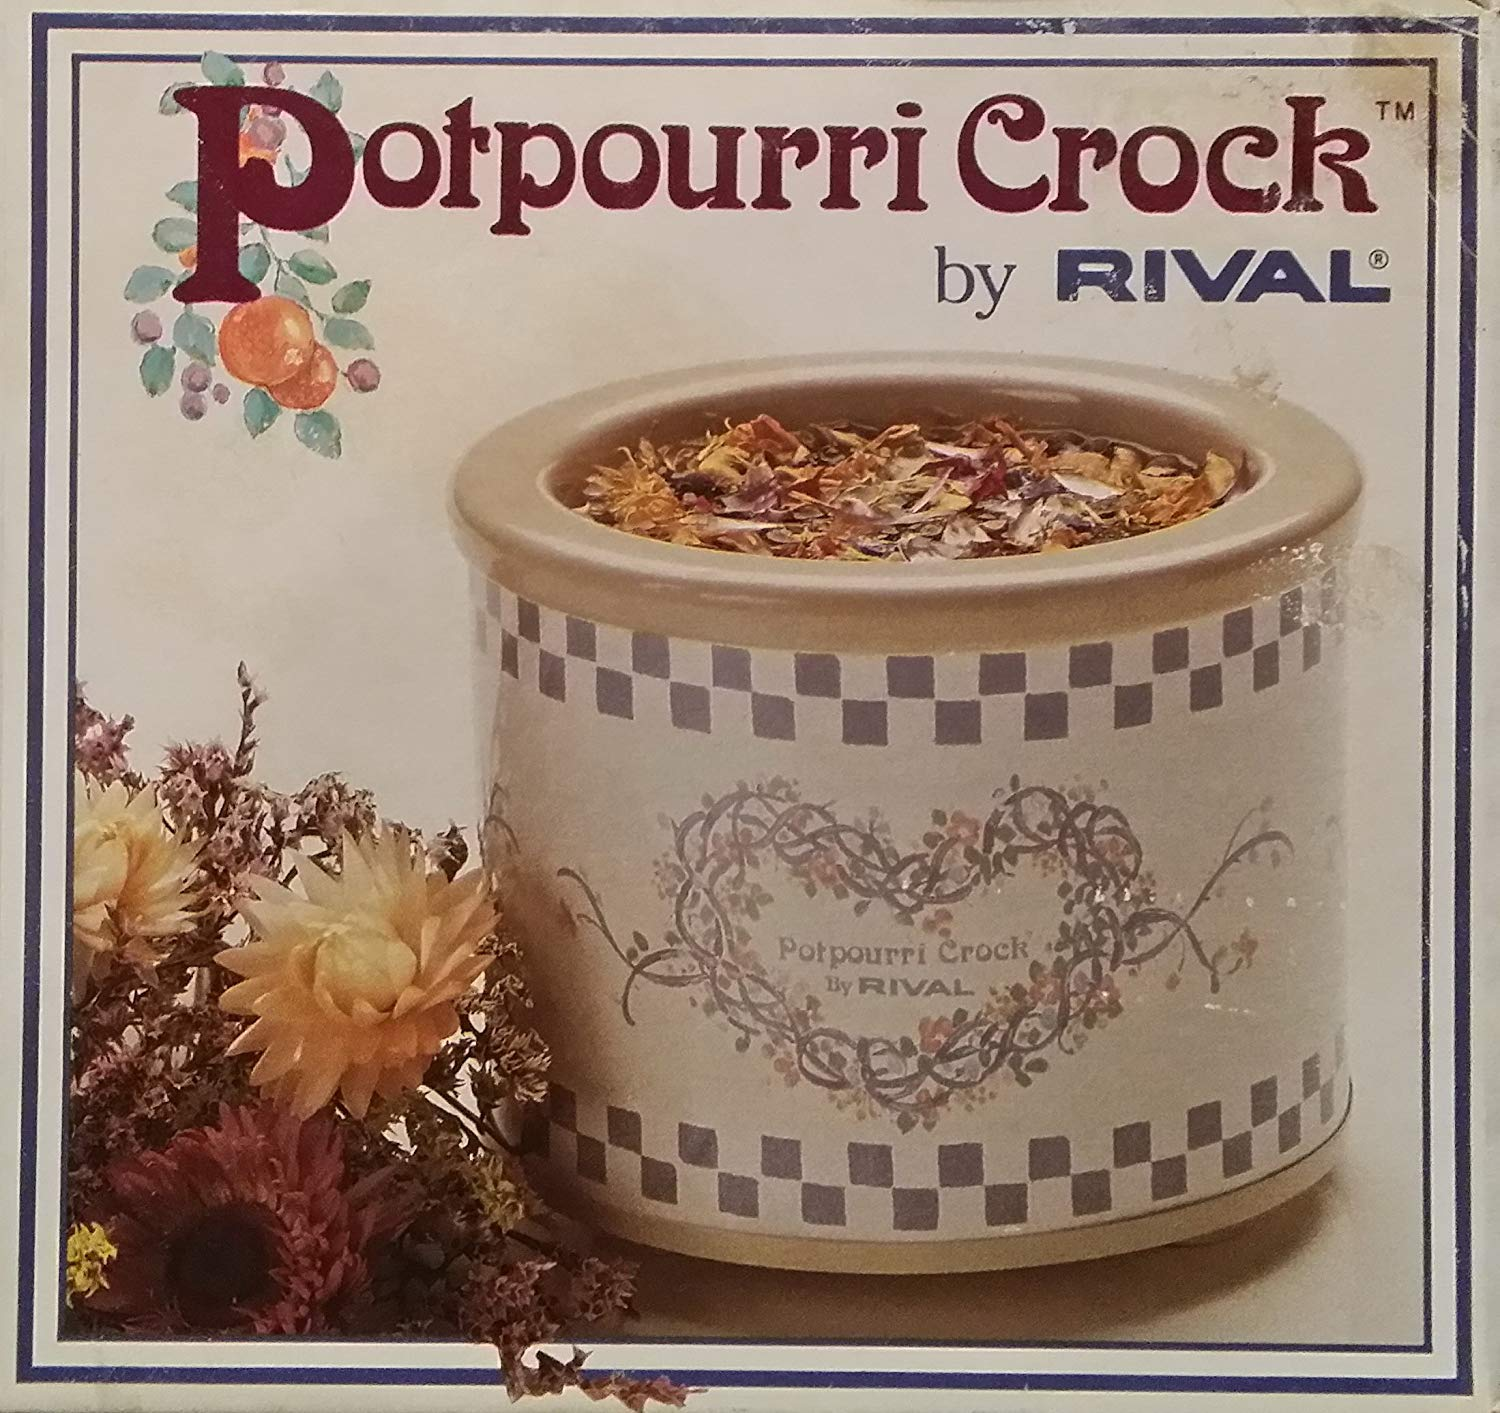 Rival Potpourri Crock Model 3206 - Heart and Checkered Pattern